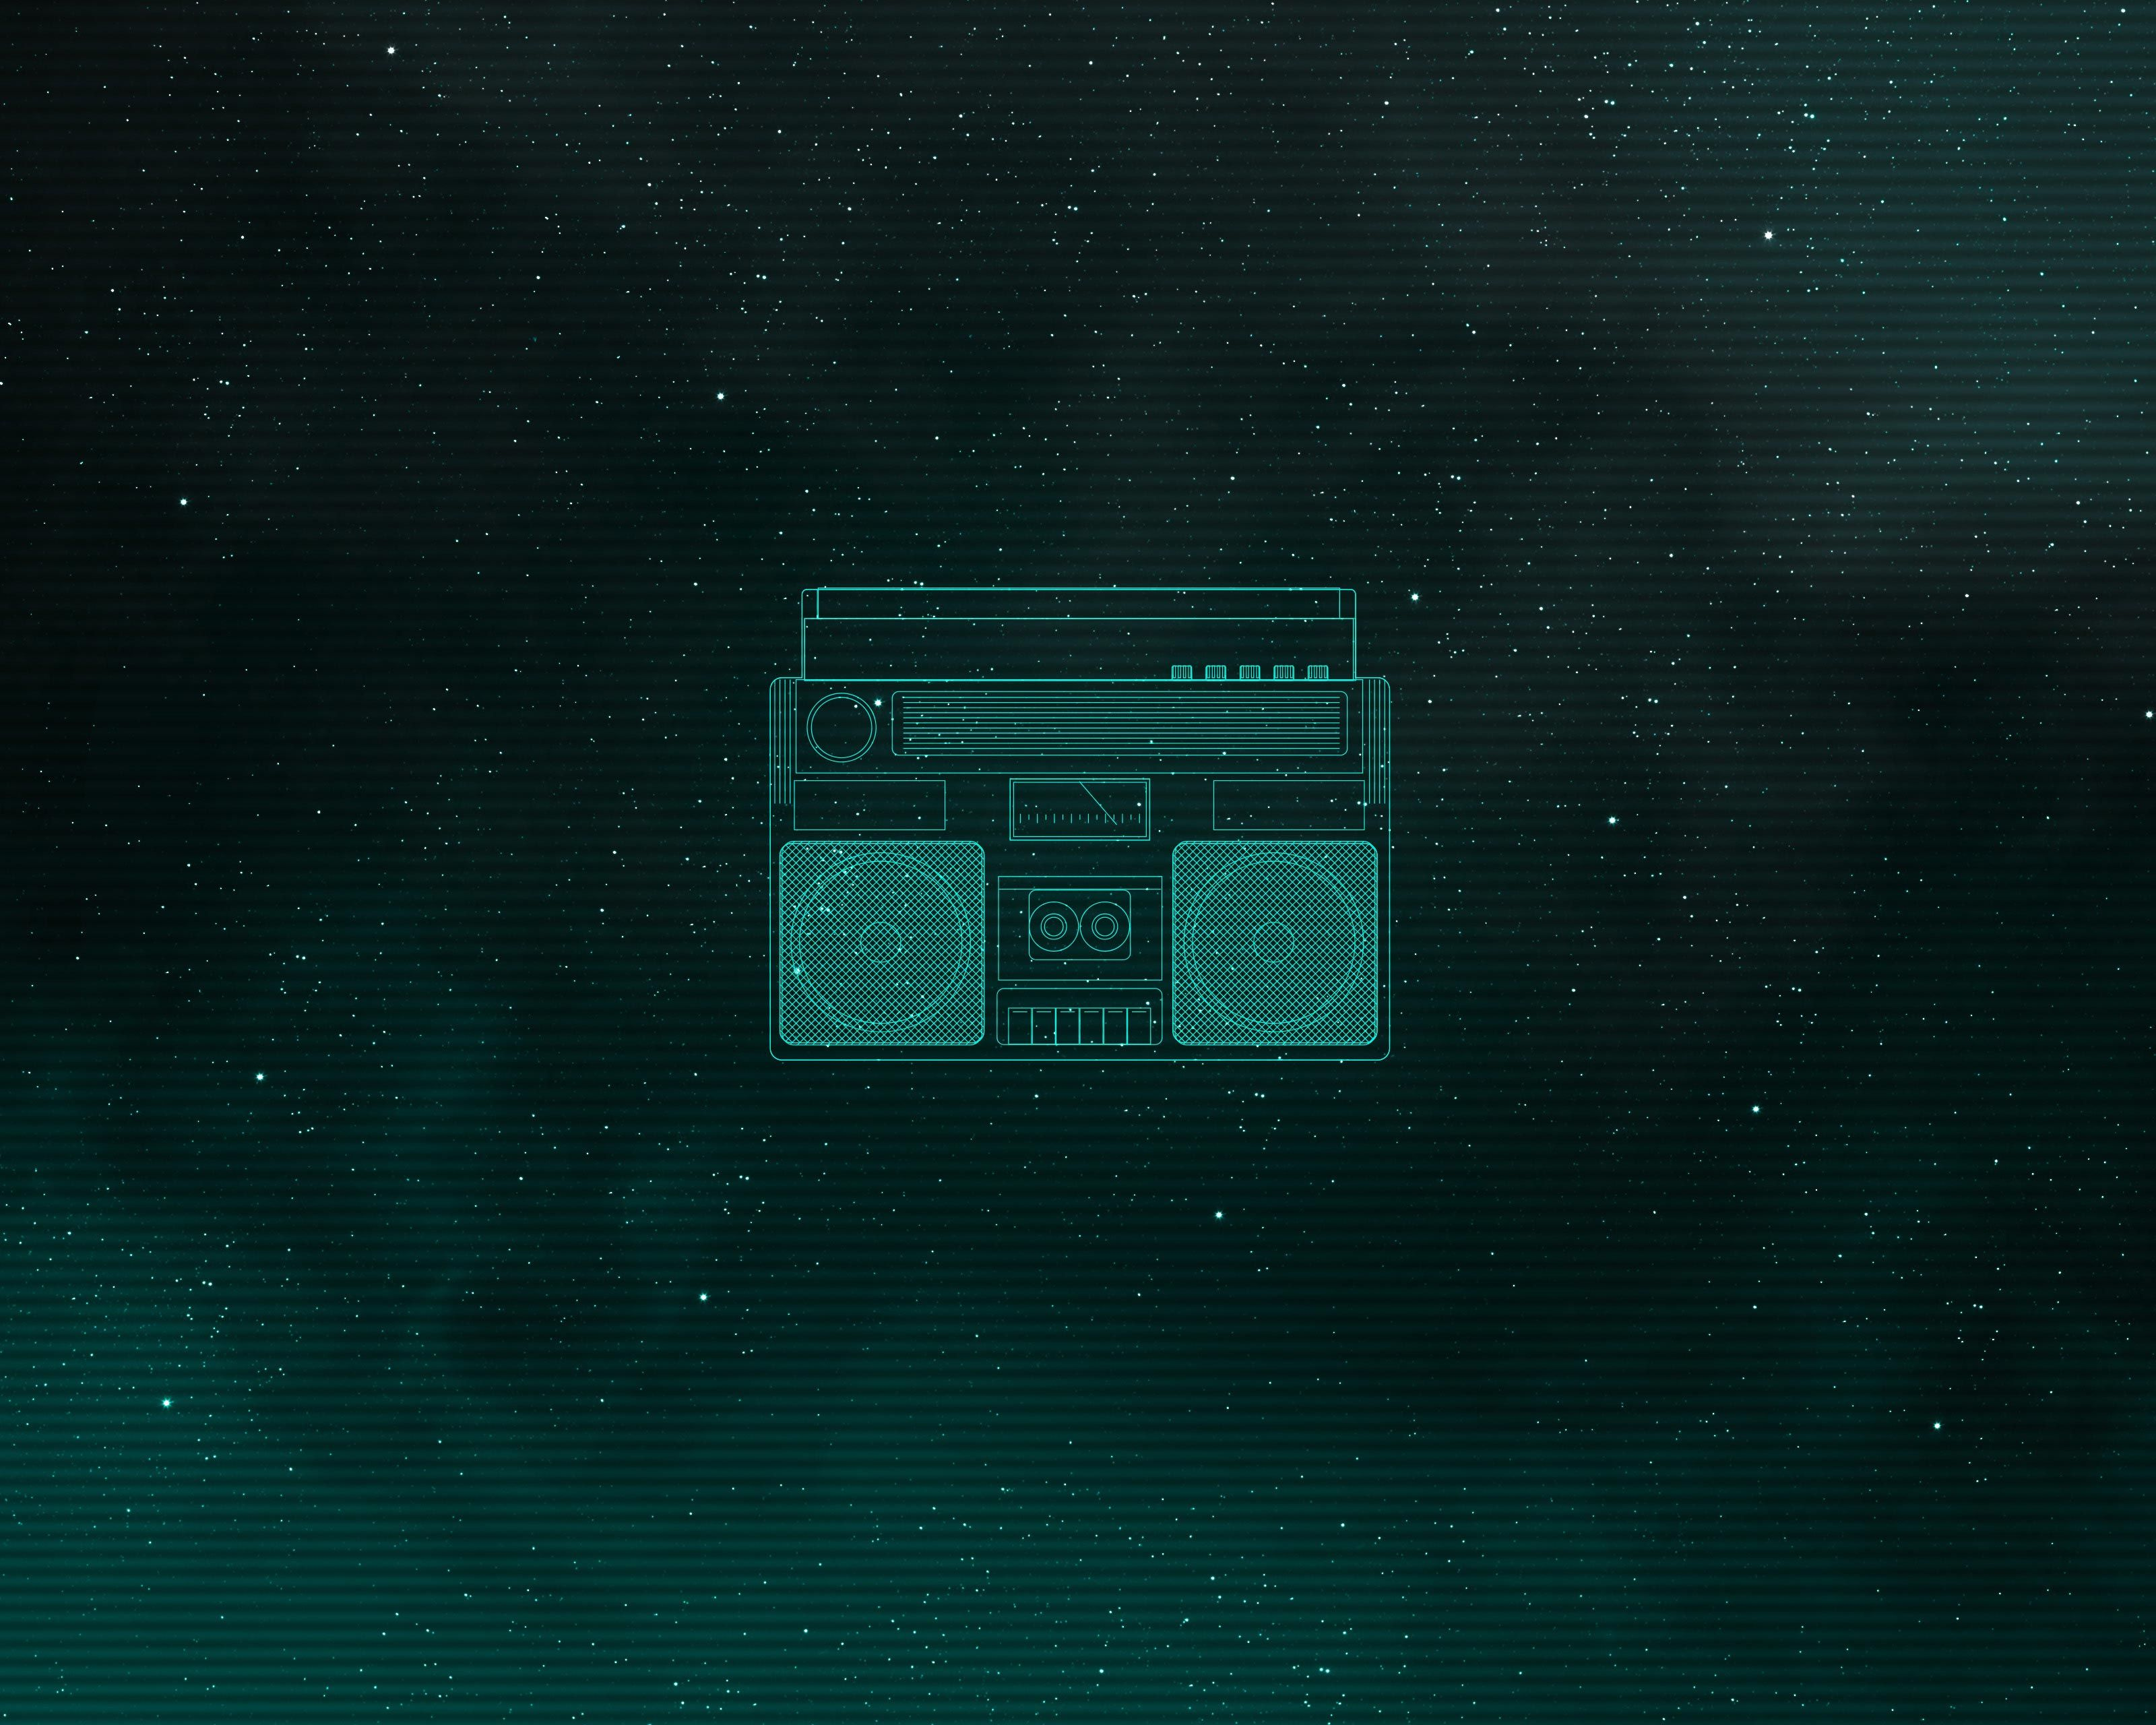 2560x1440 Wallpaper Hd Rad Pack 80 S Themed Hd Wallpapers Nate Wren Graphic